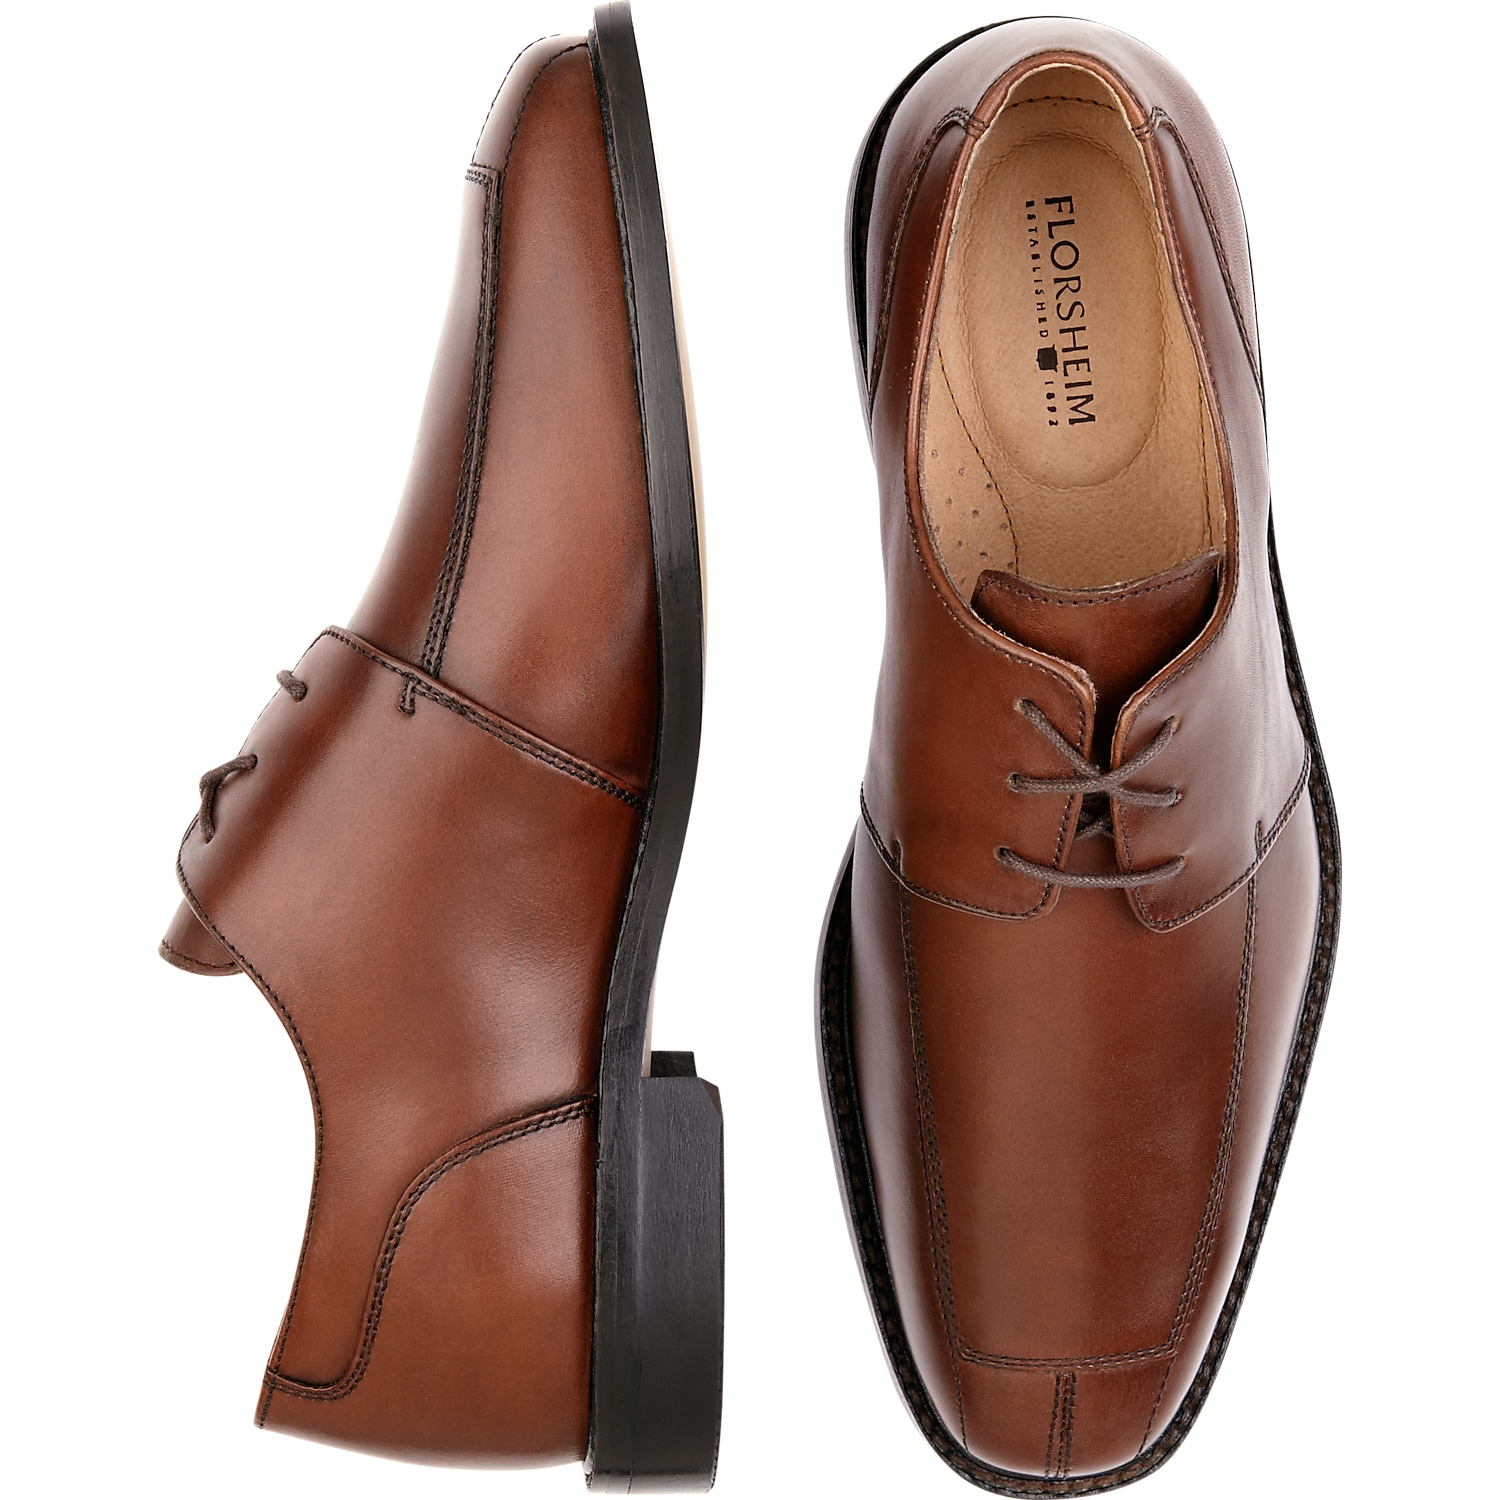 florsheim shoes durban july results